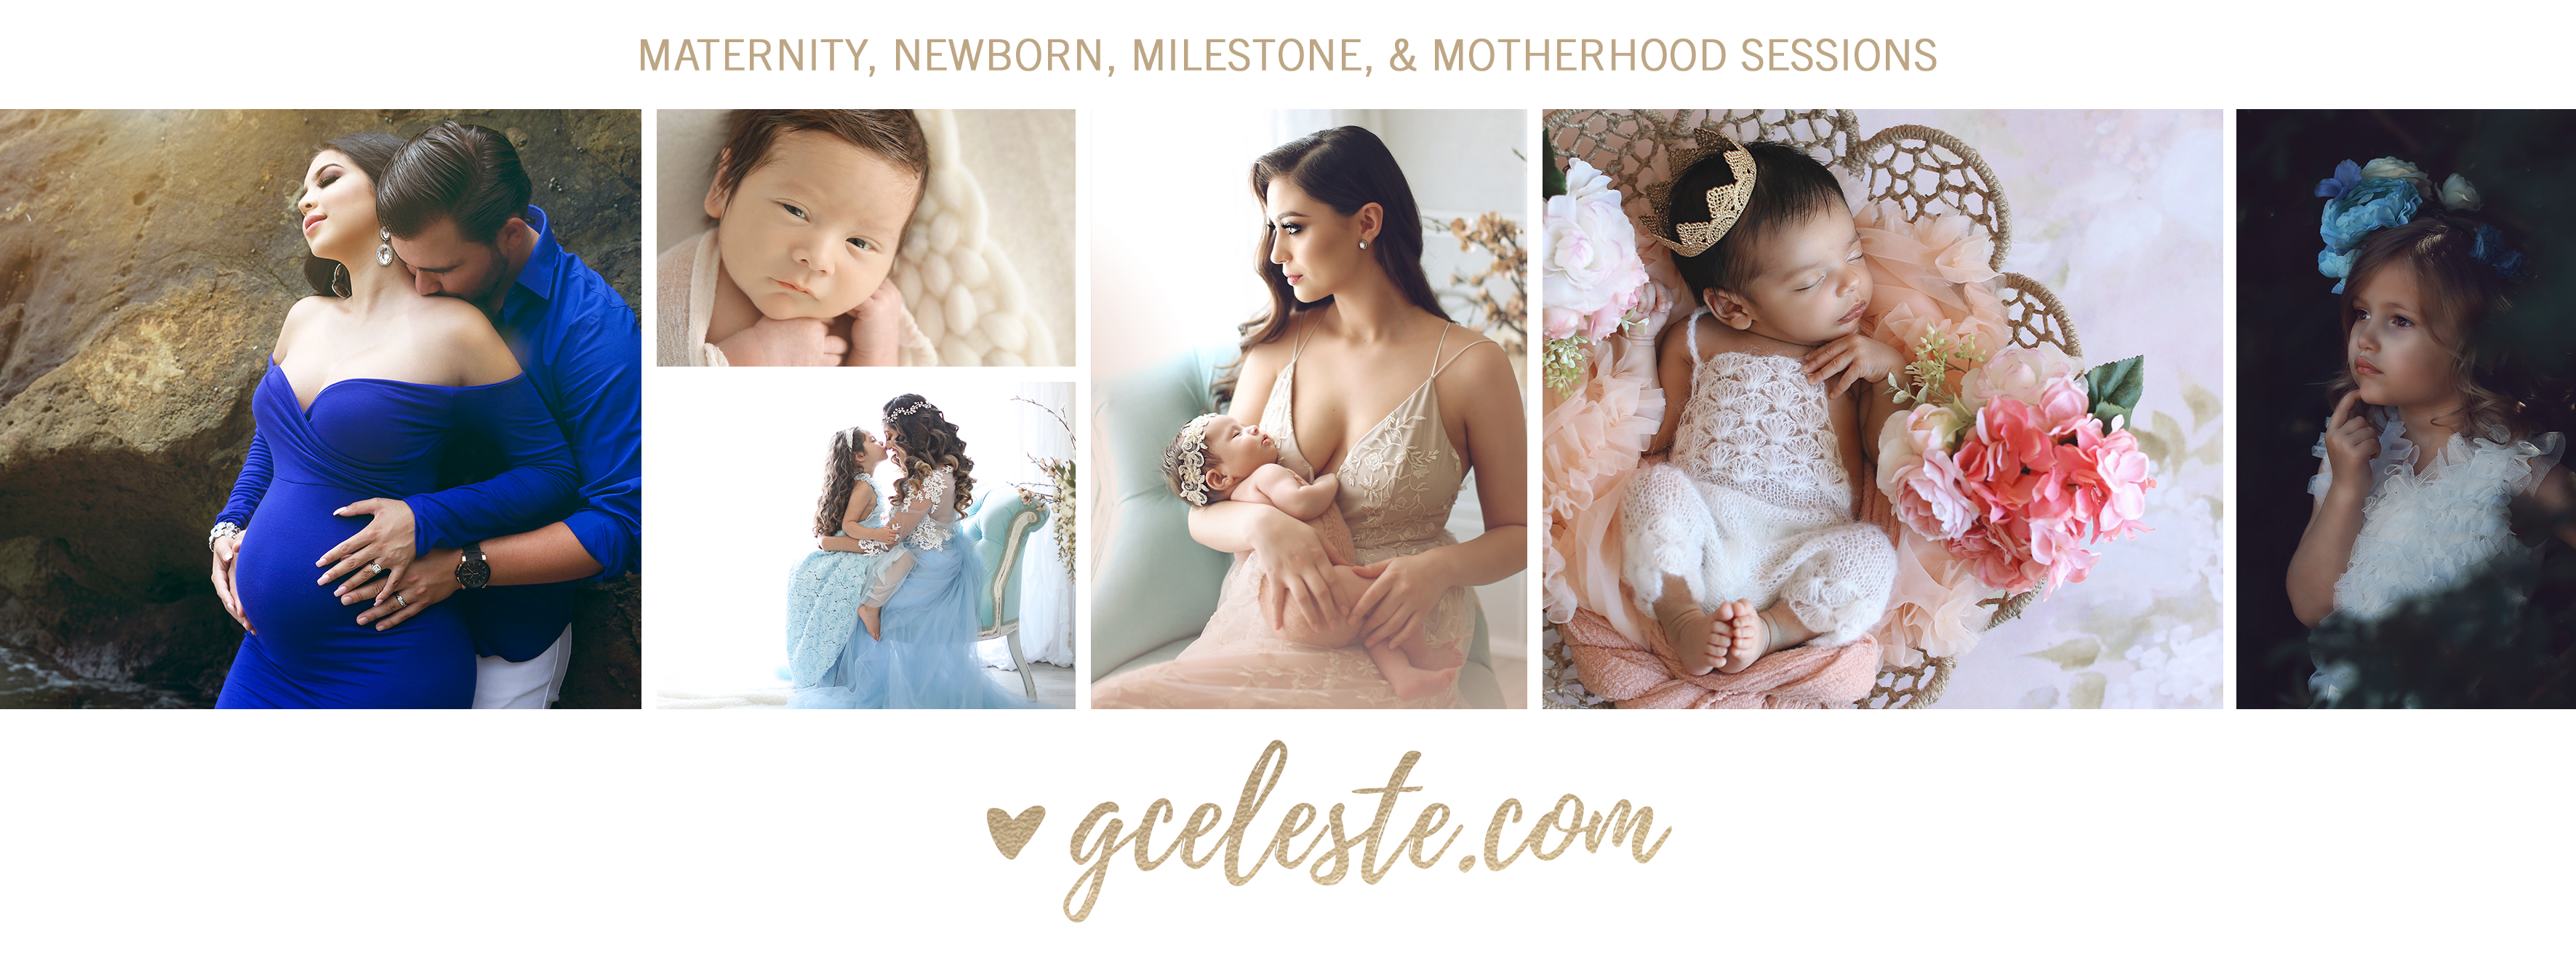 Orange County's Best Maternity, Newborn and Baby Photography